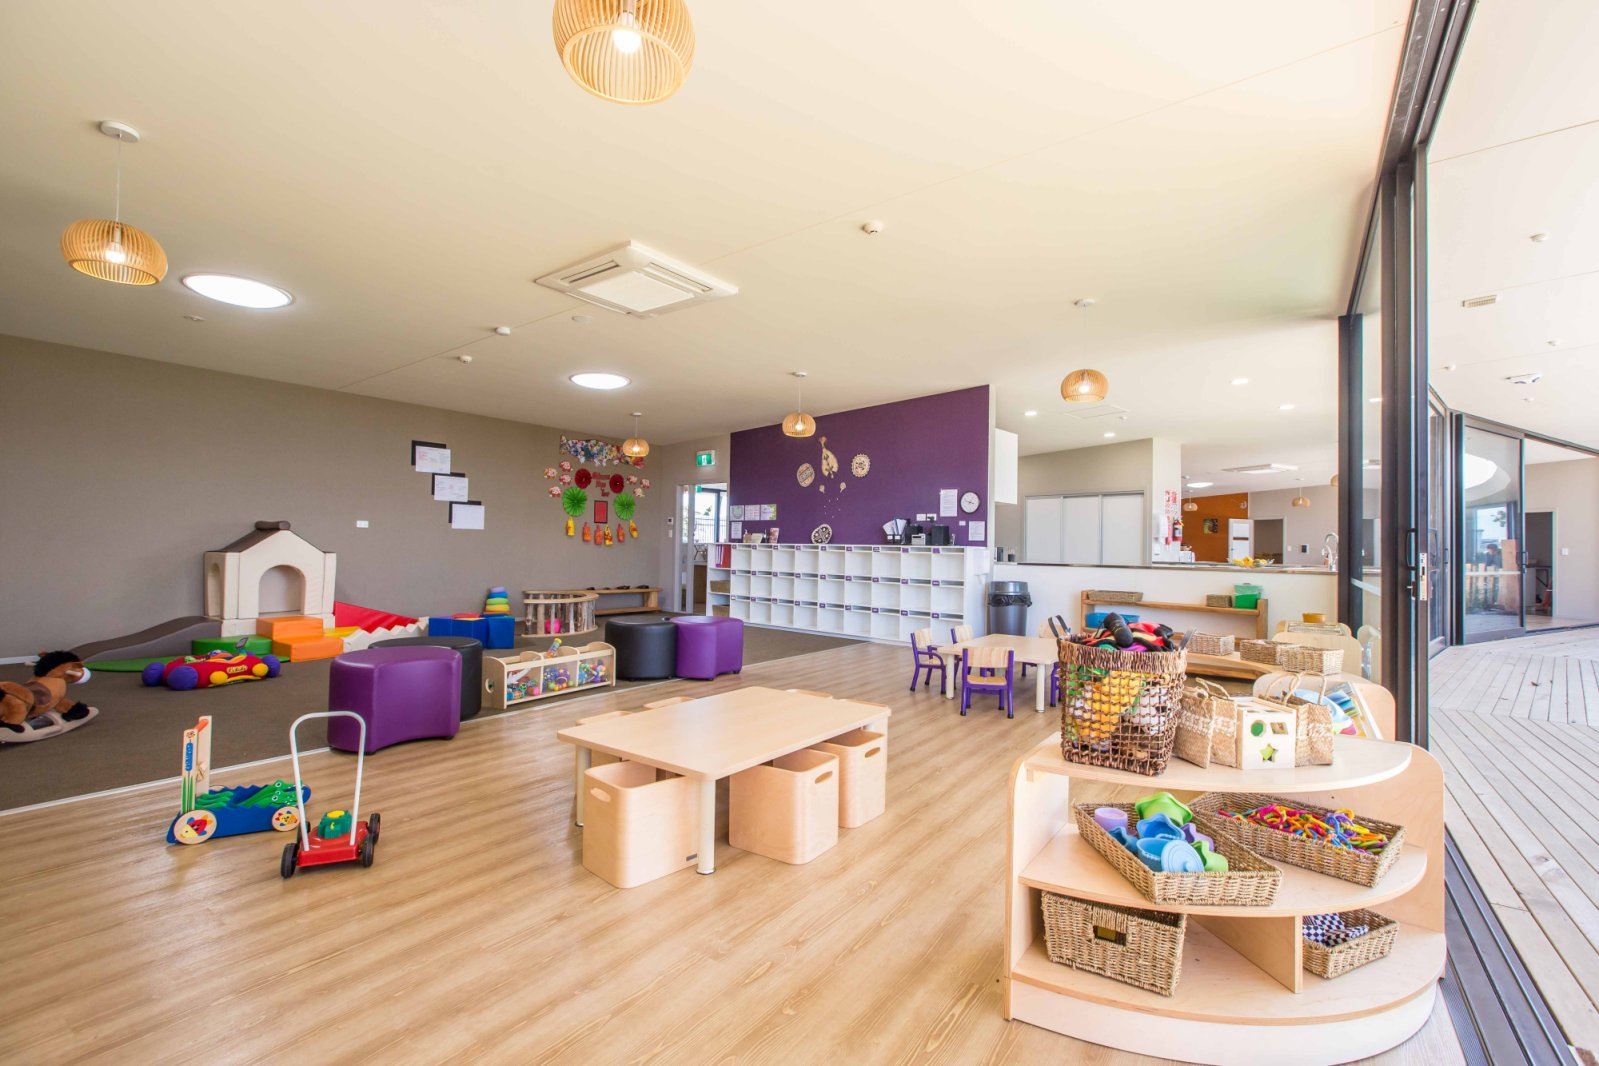 childs day care center - HD1599×1066